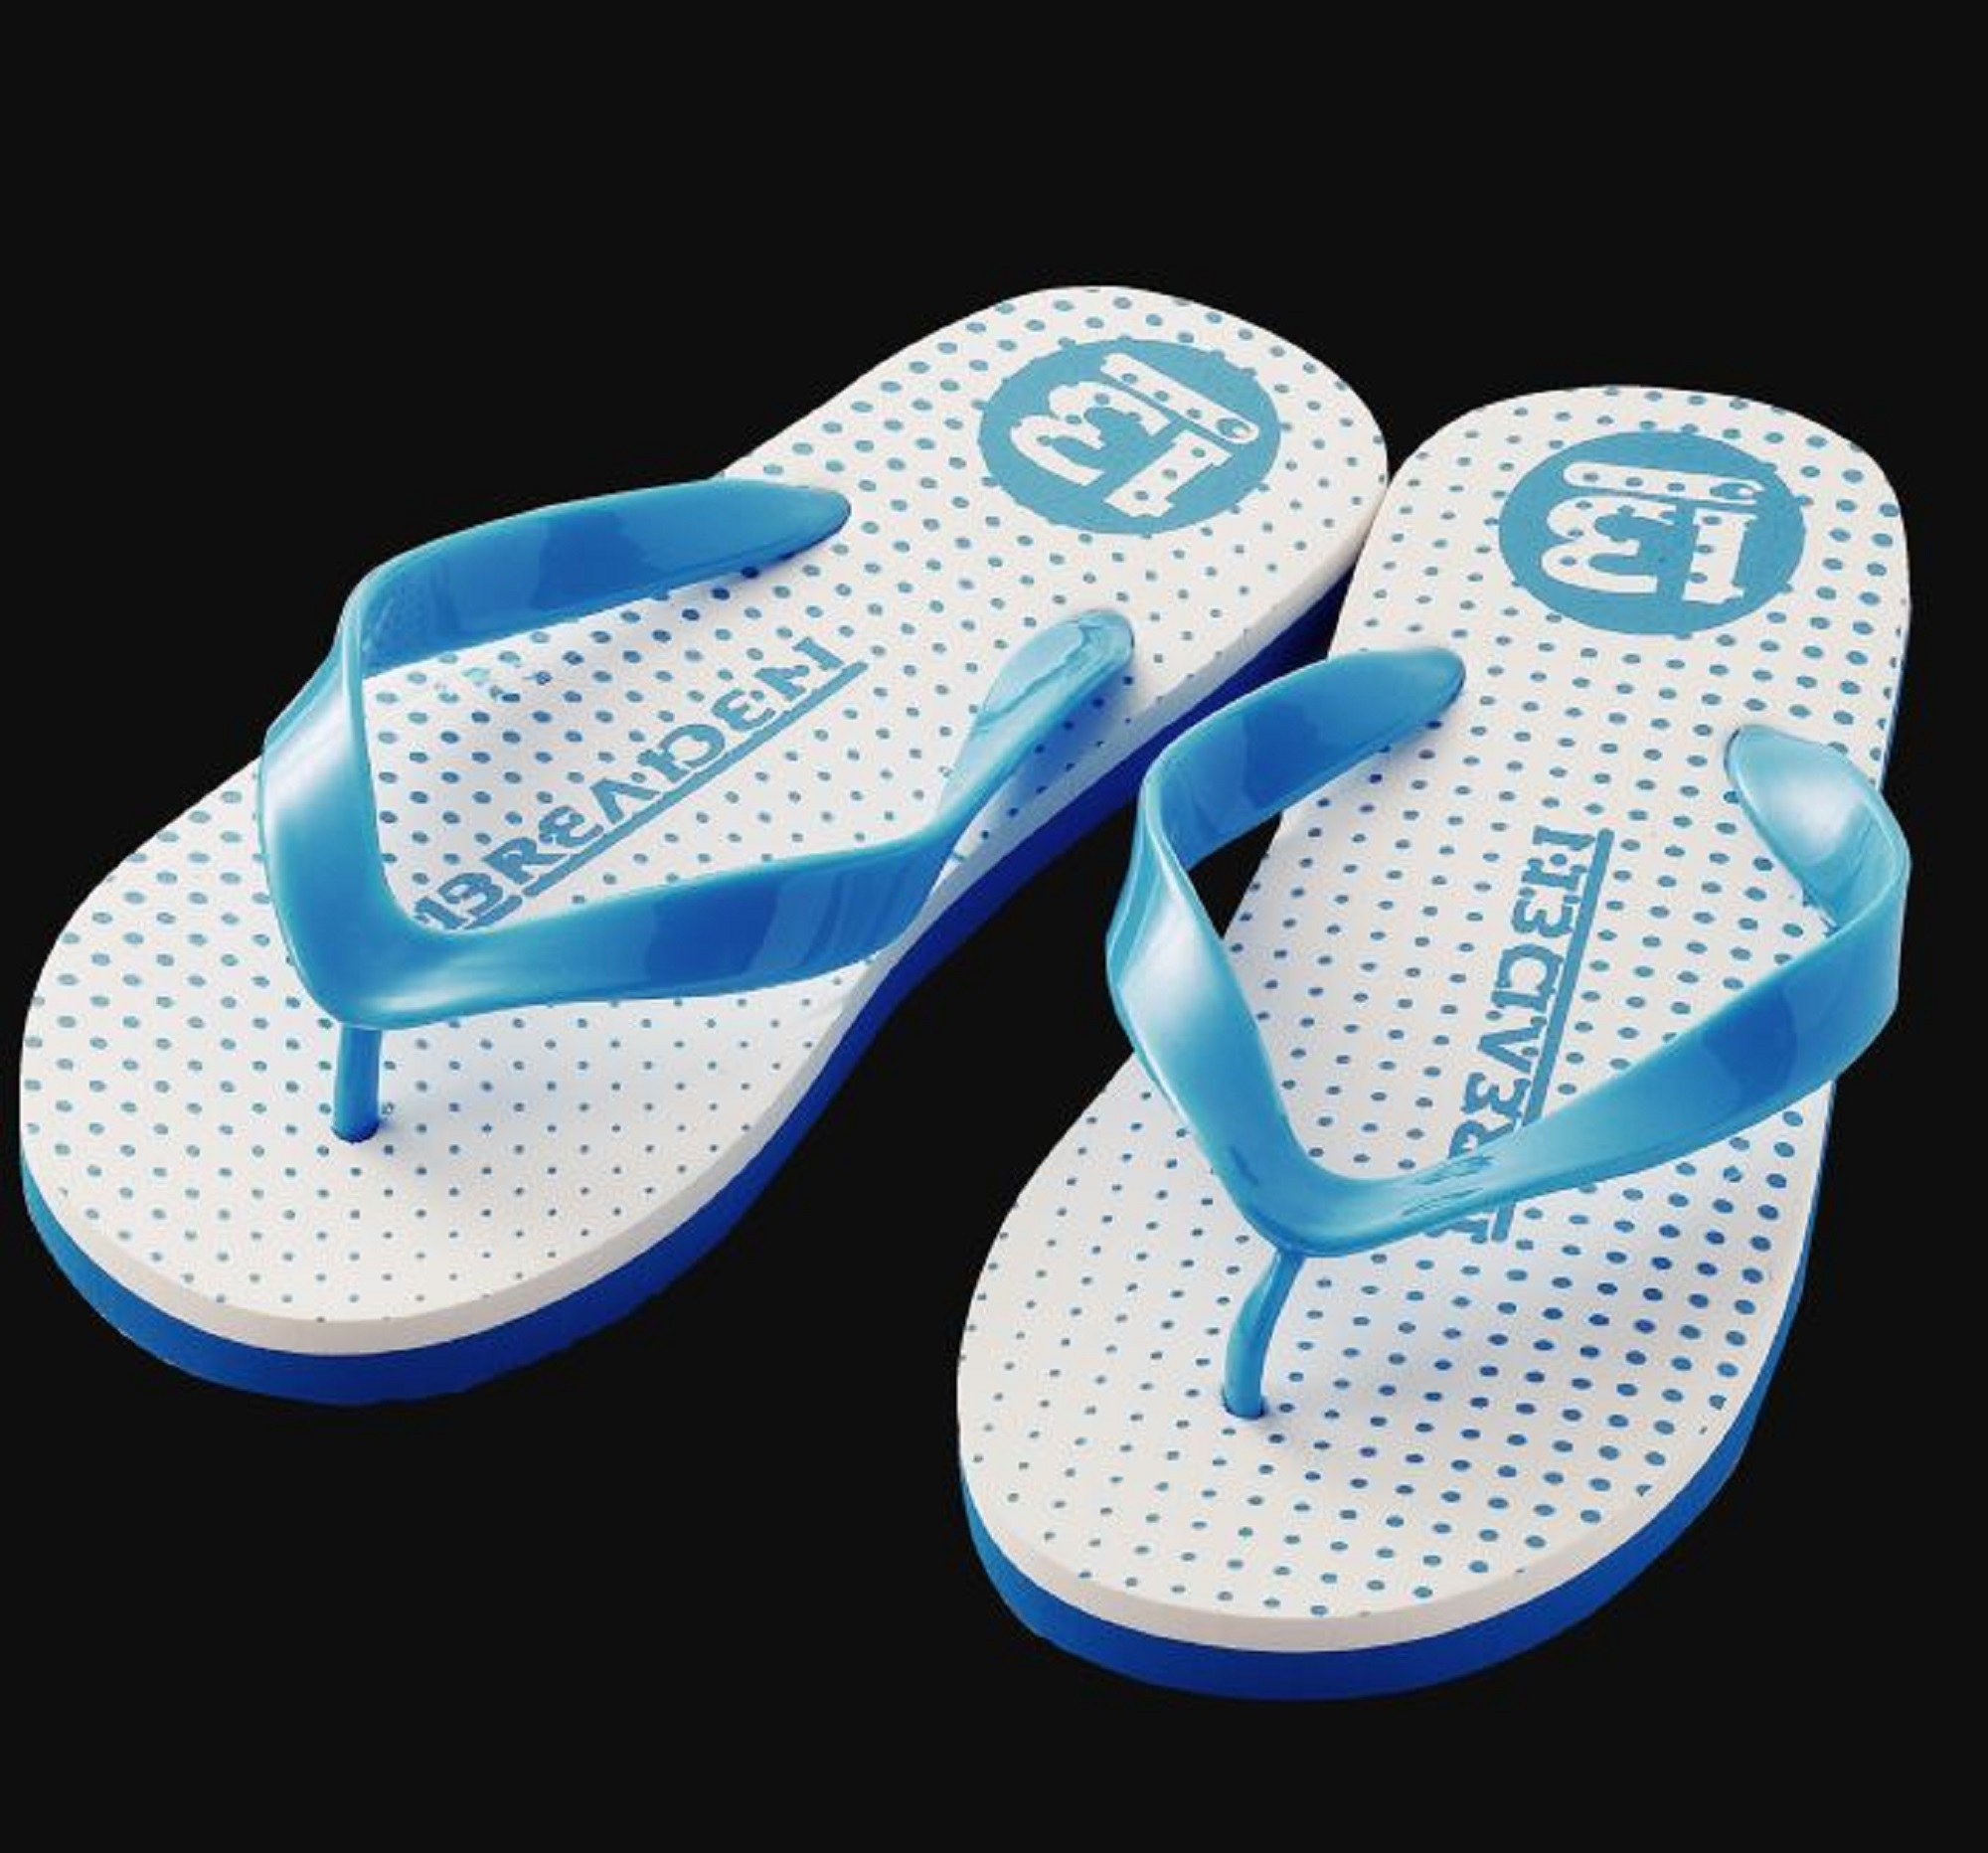 Breaden Beach Sandals Size 28cm 03 (7393)